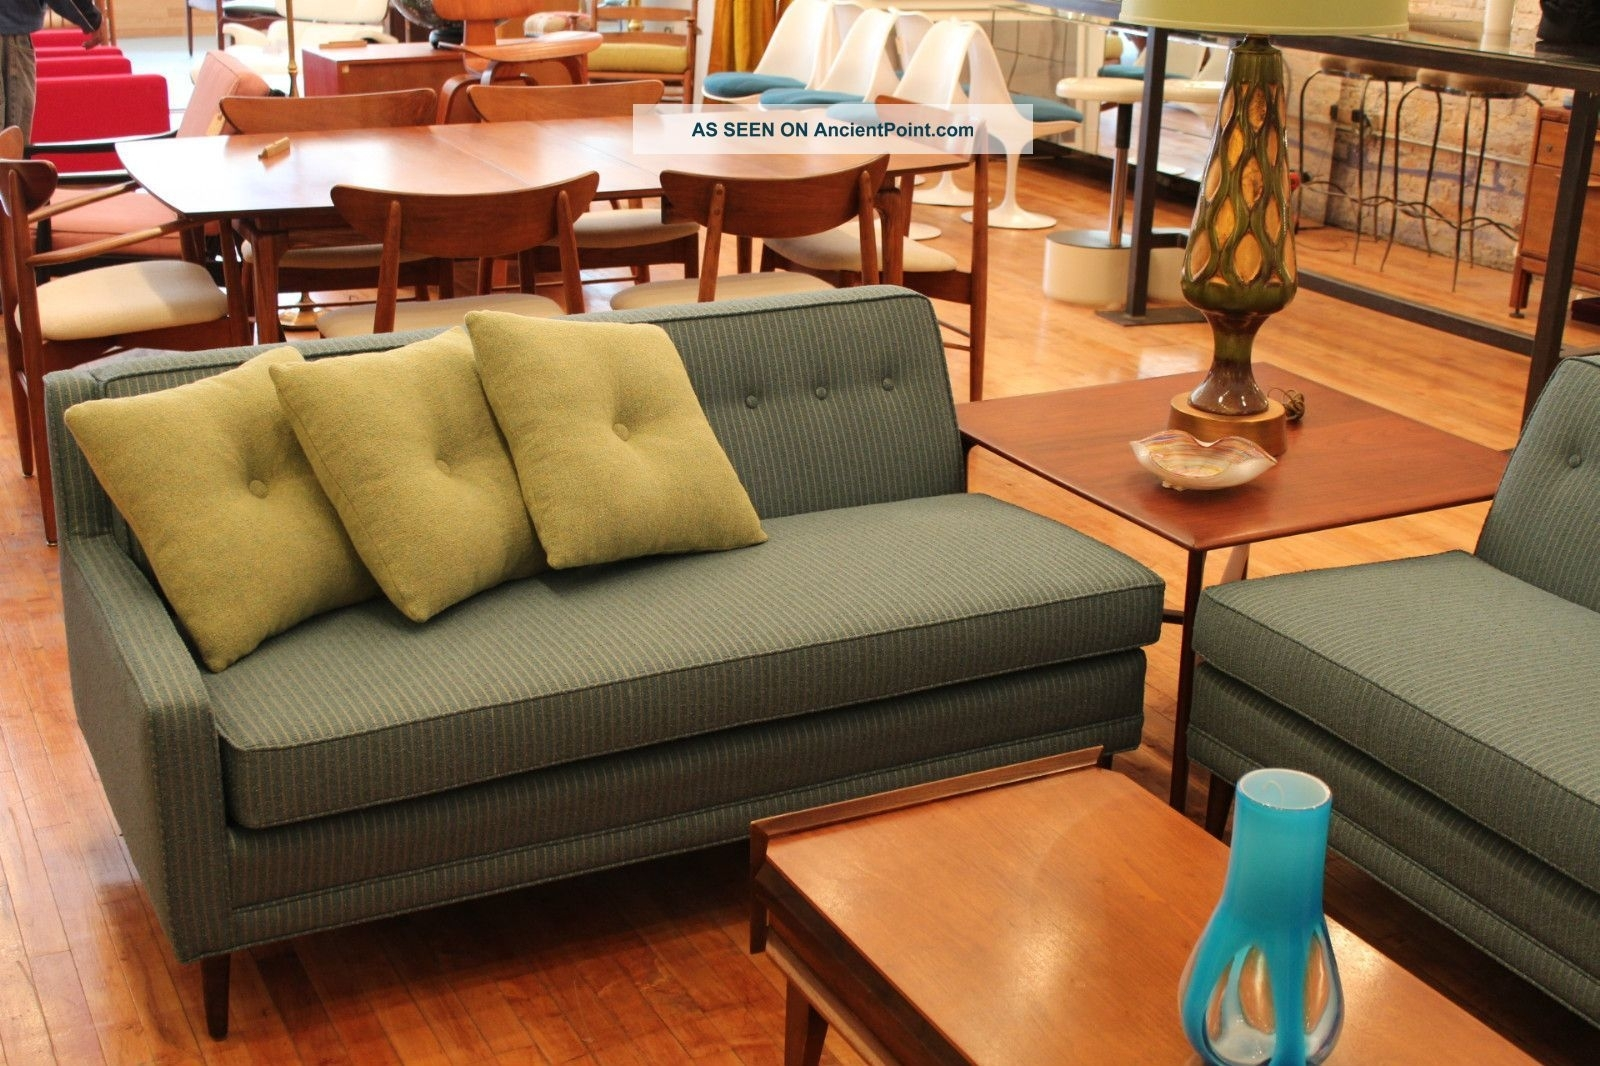 Simple Retro Sectional Sofa 55 In Conversation Sofa Sectional With Inside Vintage Sectional Sofas (View 7 of 10)